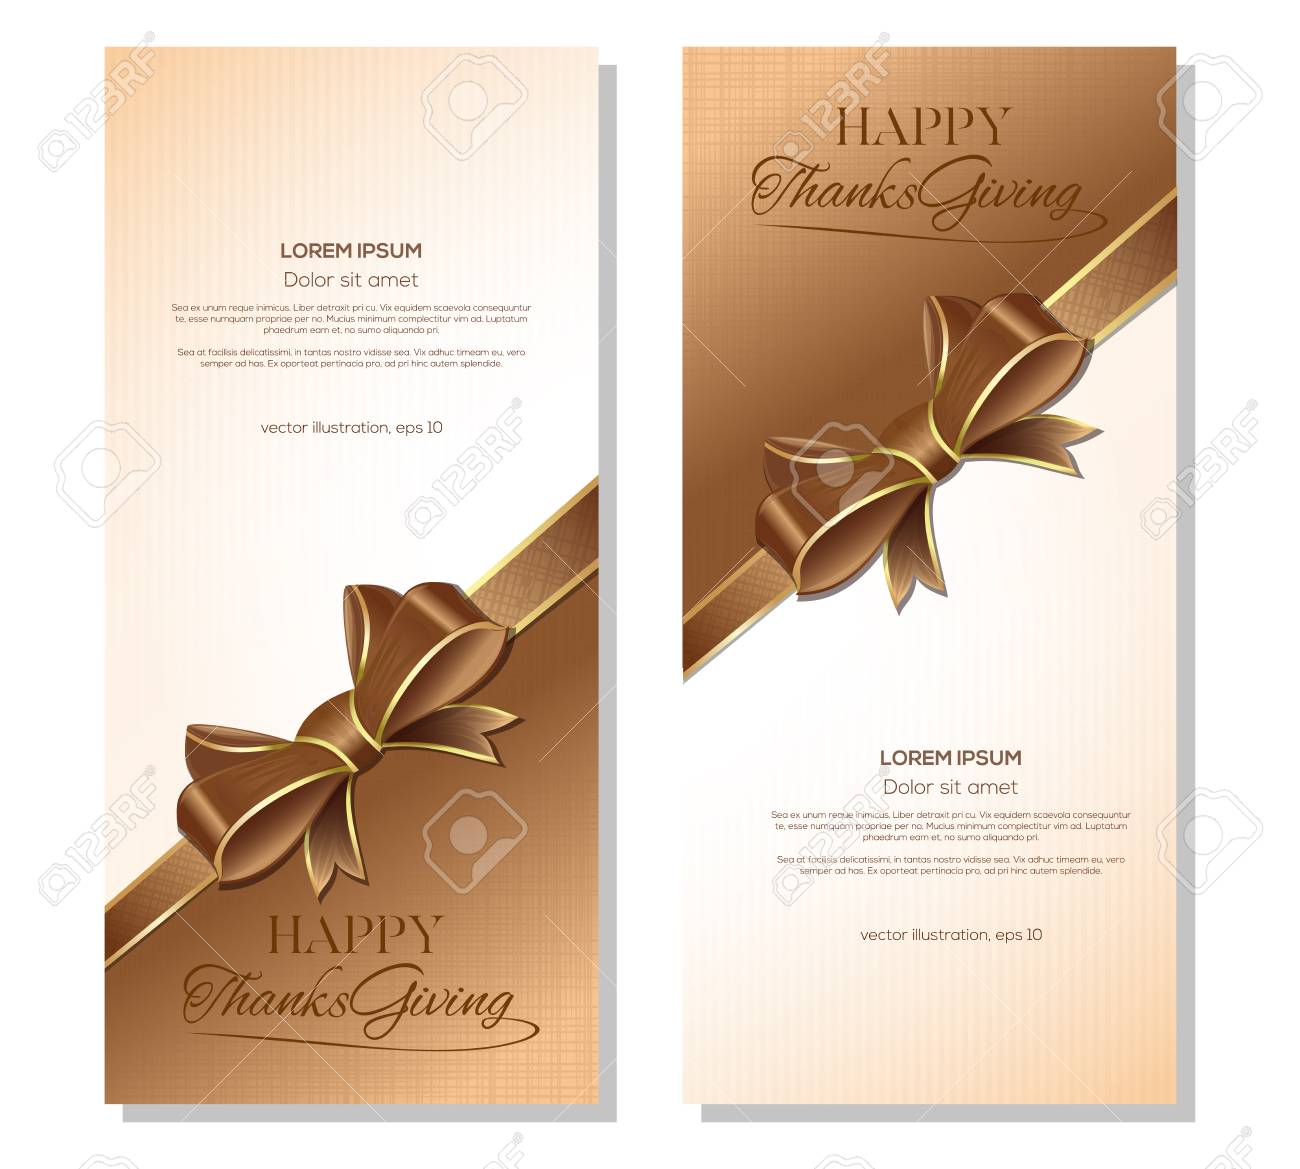 thanksgiving lettering card design vertical banners template